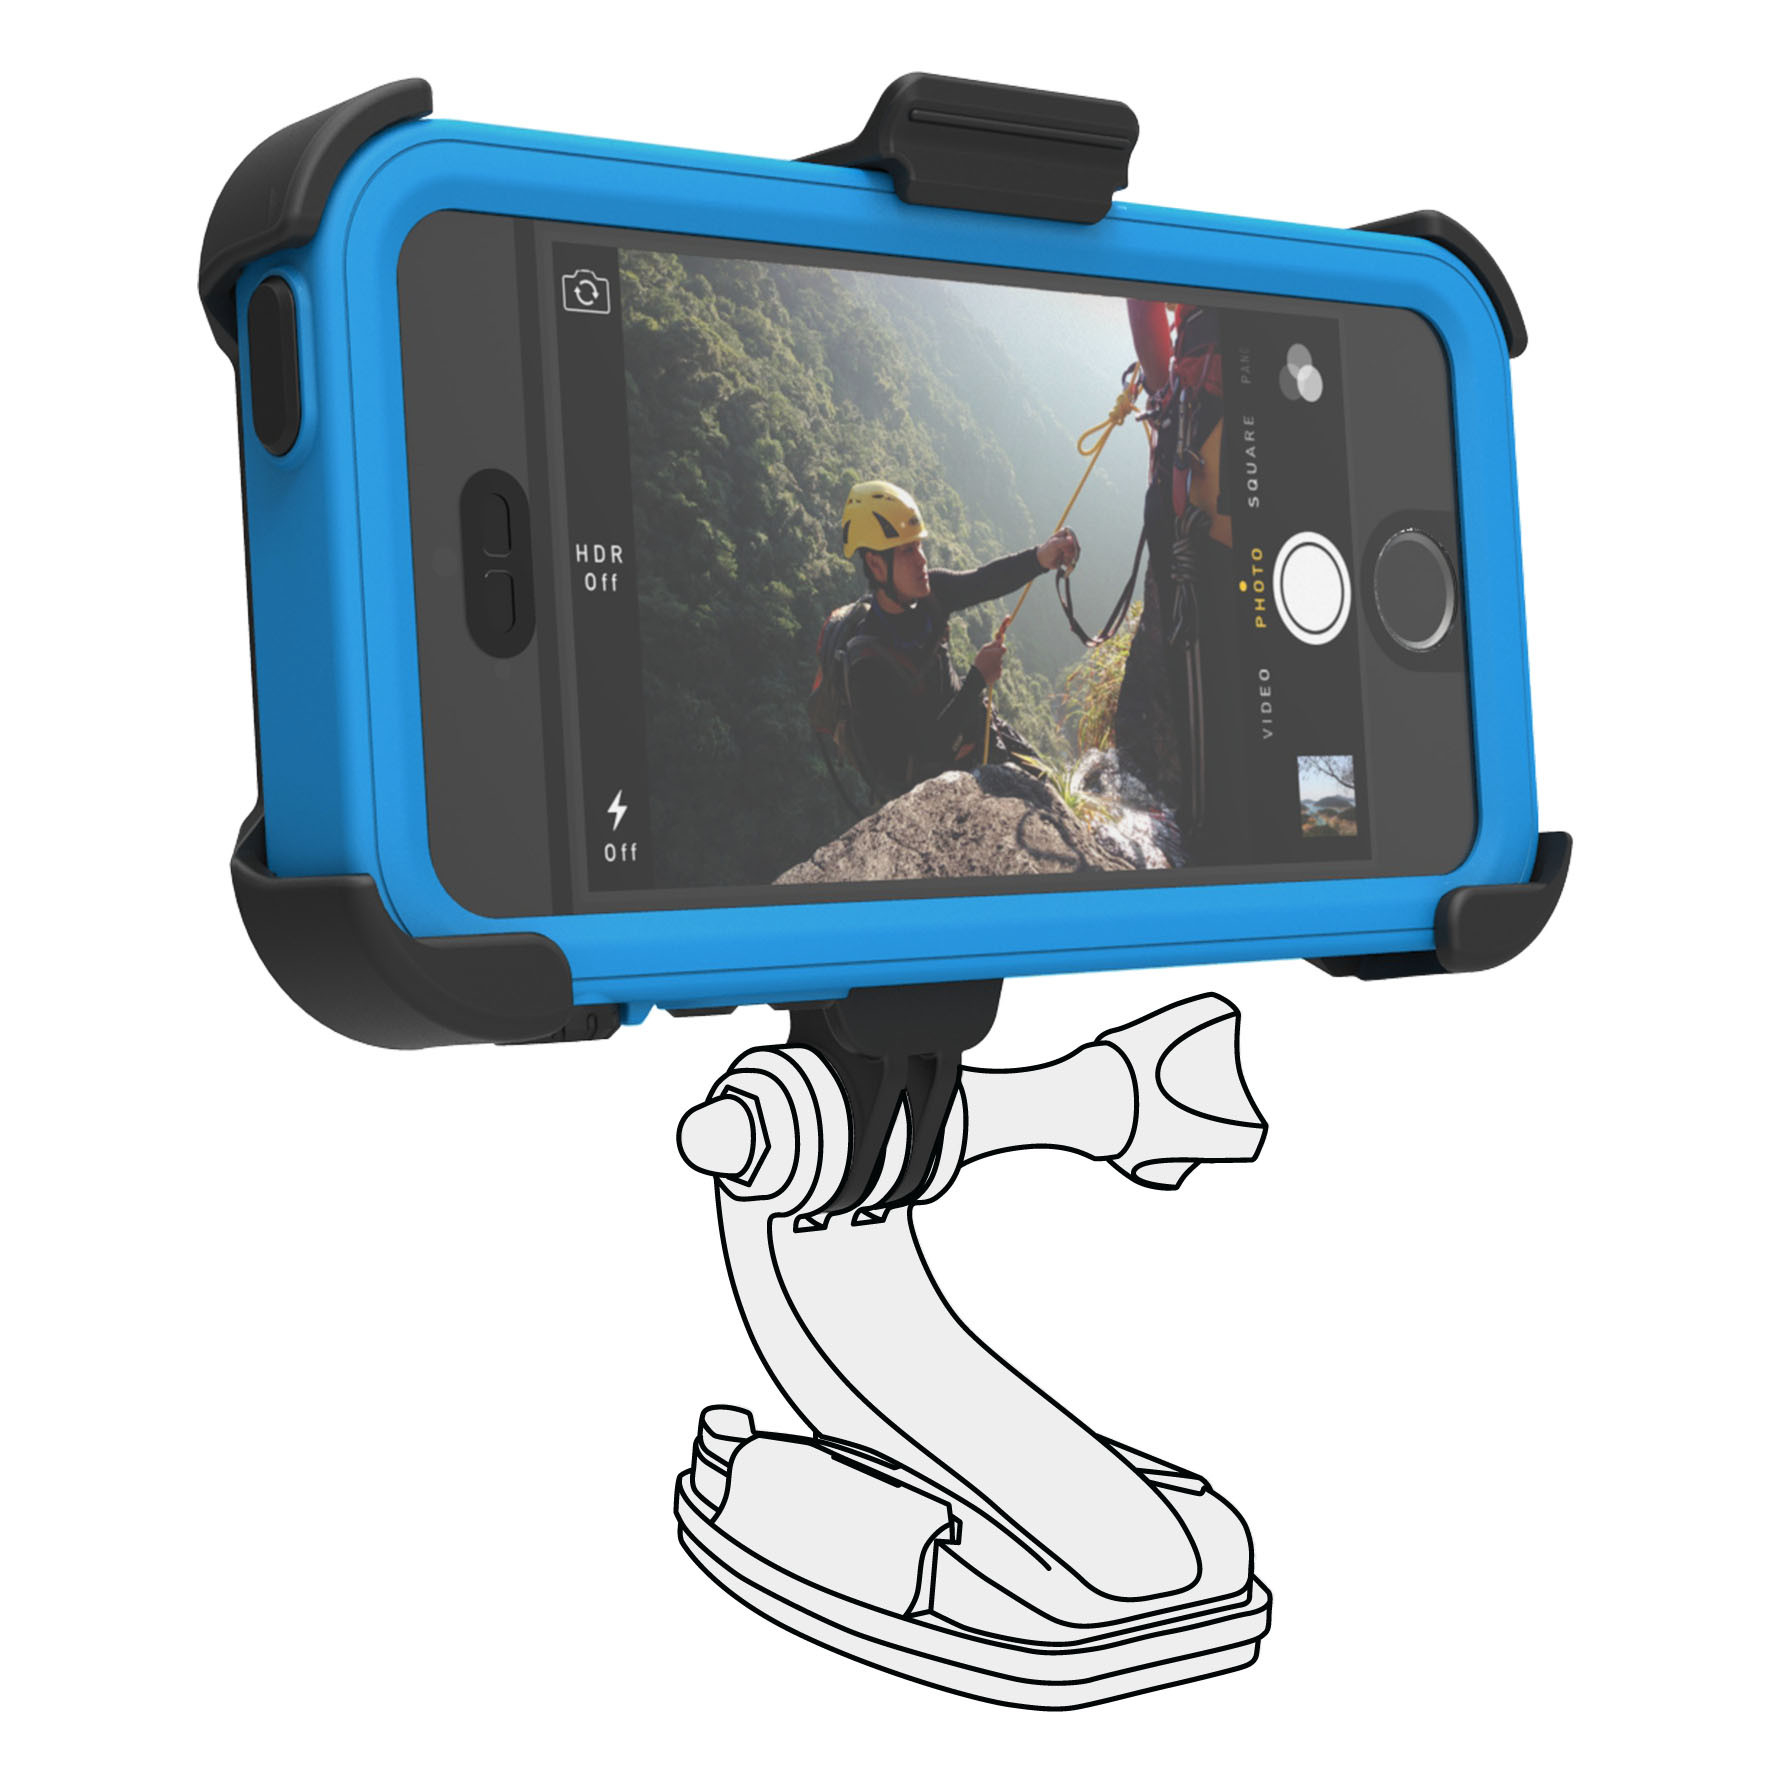 Catalyst Catalyst Pro adapter - преходник към различни поставки за Catalyst Waterproof case за iPhone 5S, iPhone 5, iPhone SE (черен)